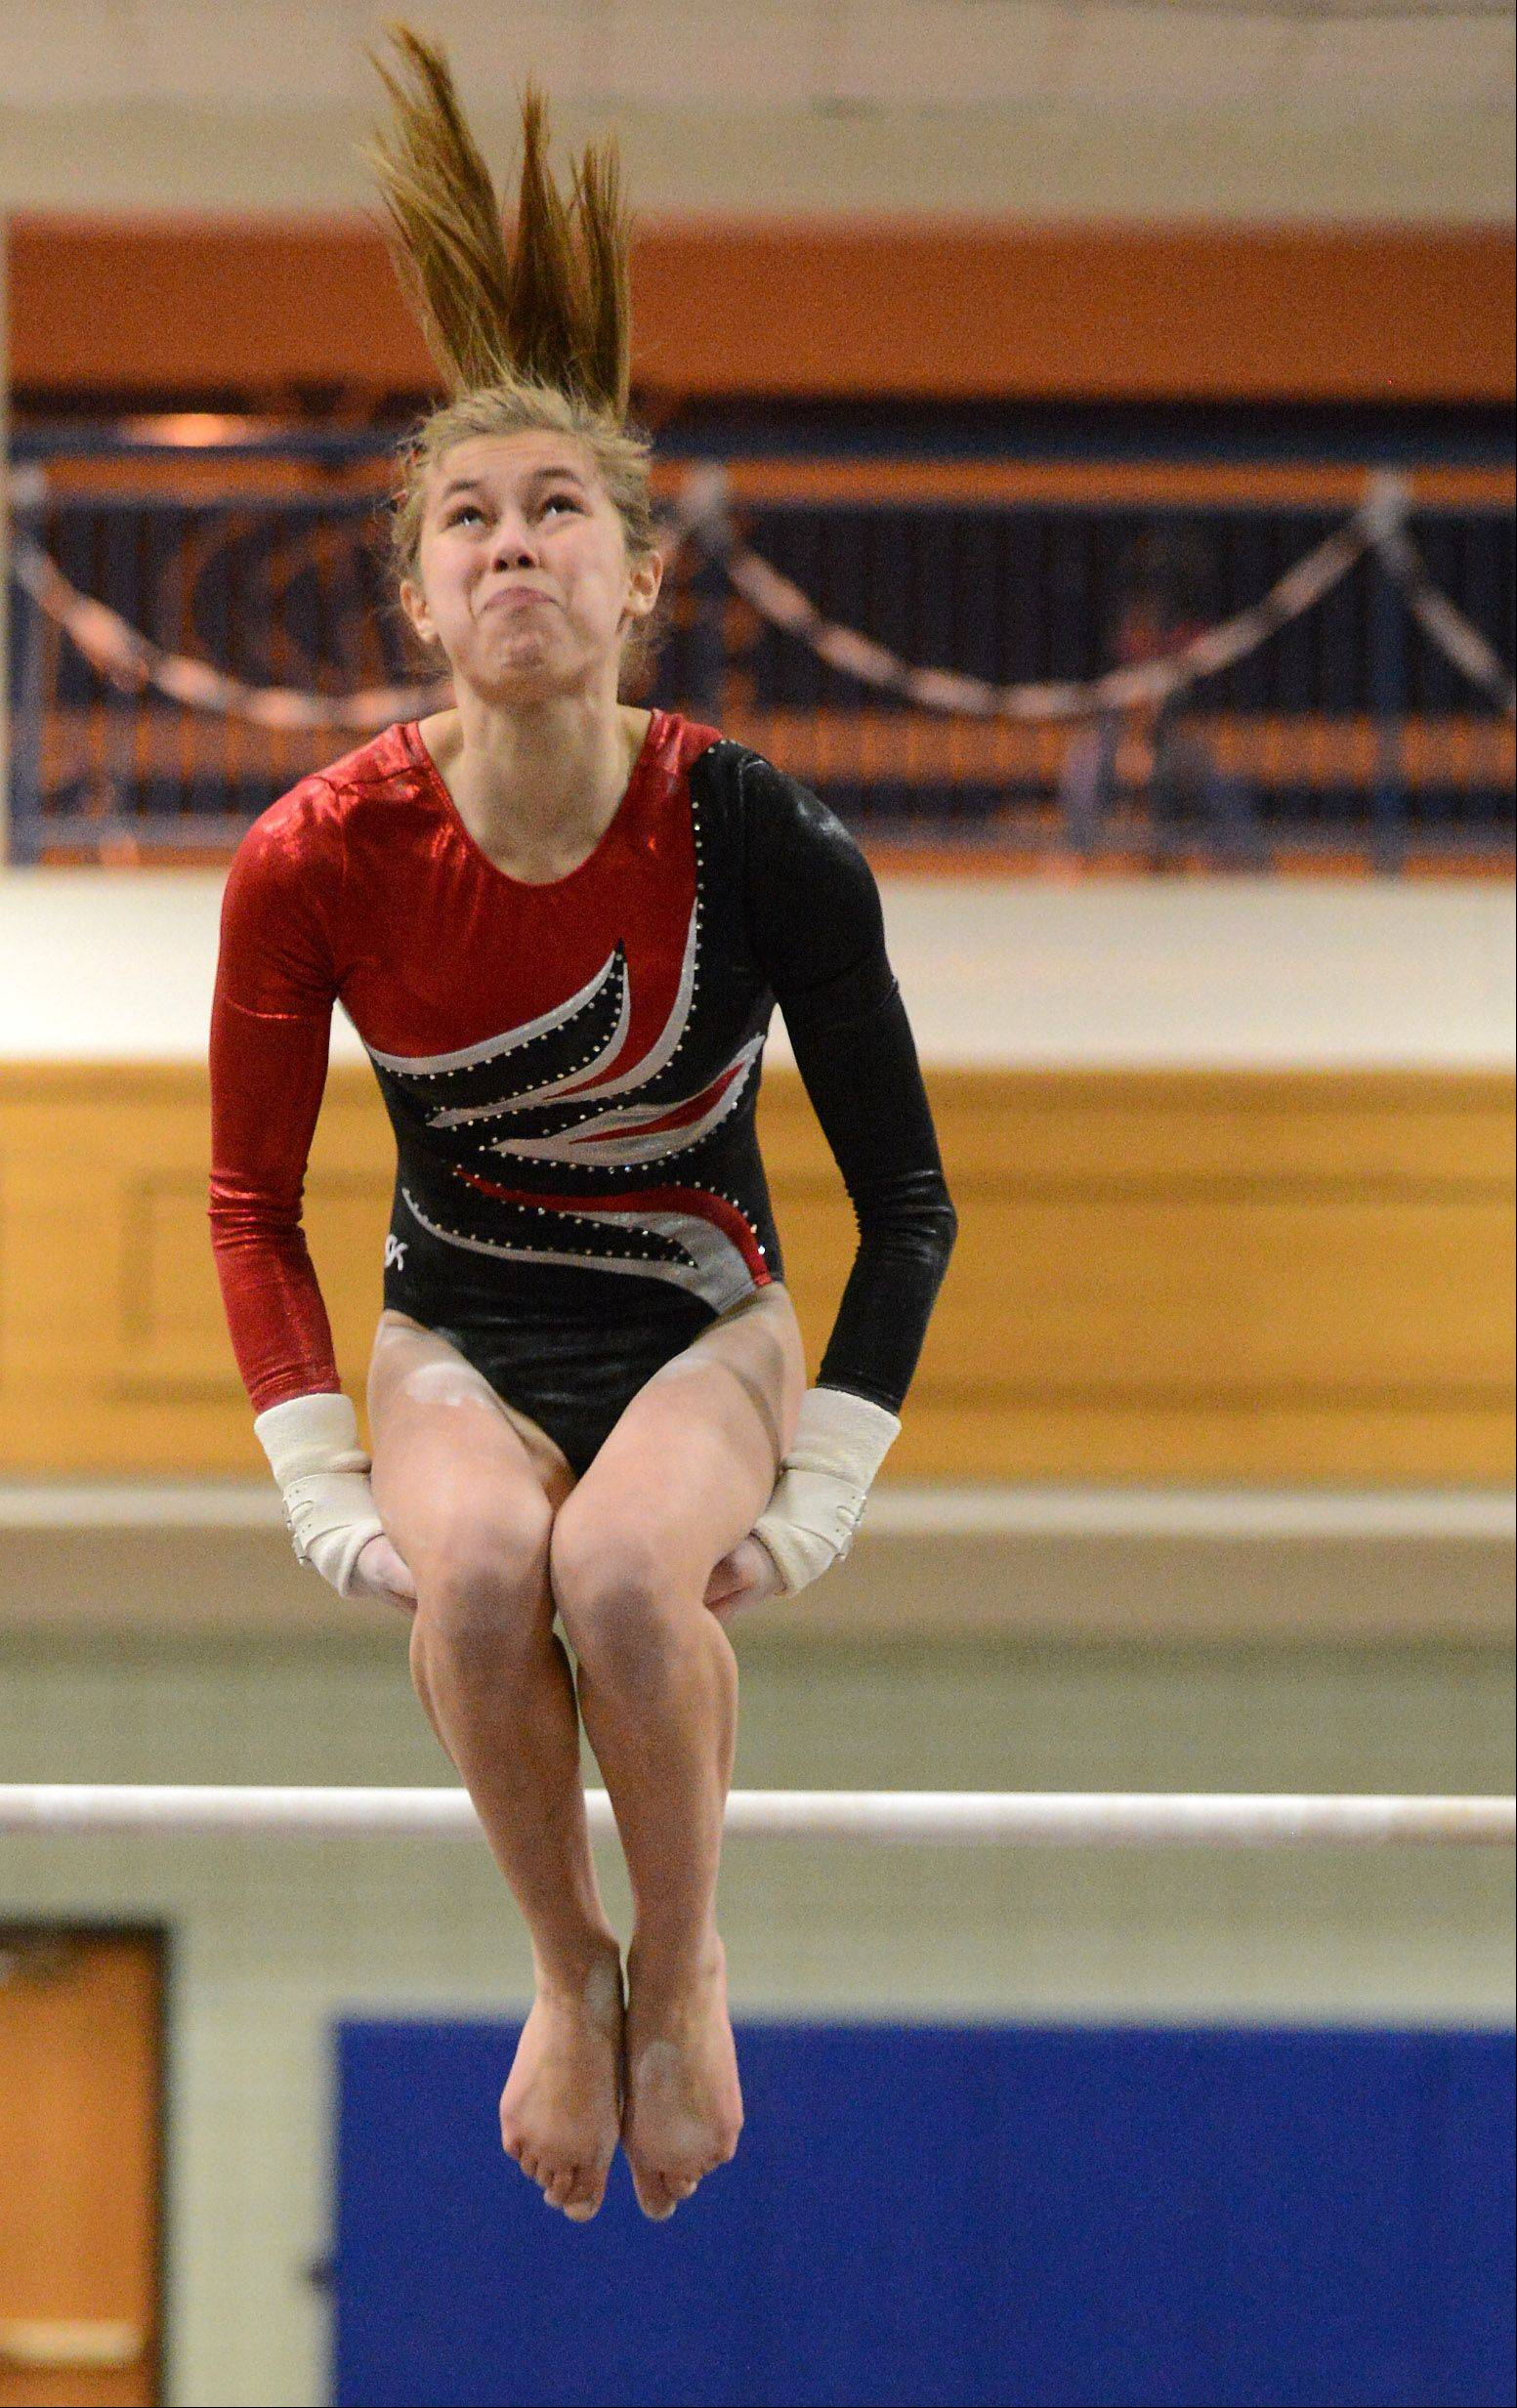 Ashley McKee of the U46 coop team dismounts during the uneven parallel bars during regional gymnastics action at Geneva High School Thursday.